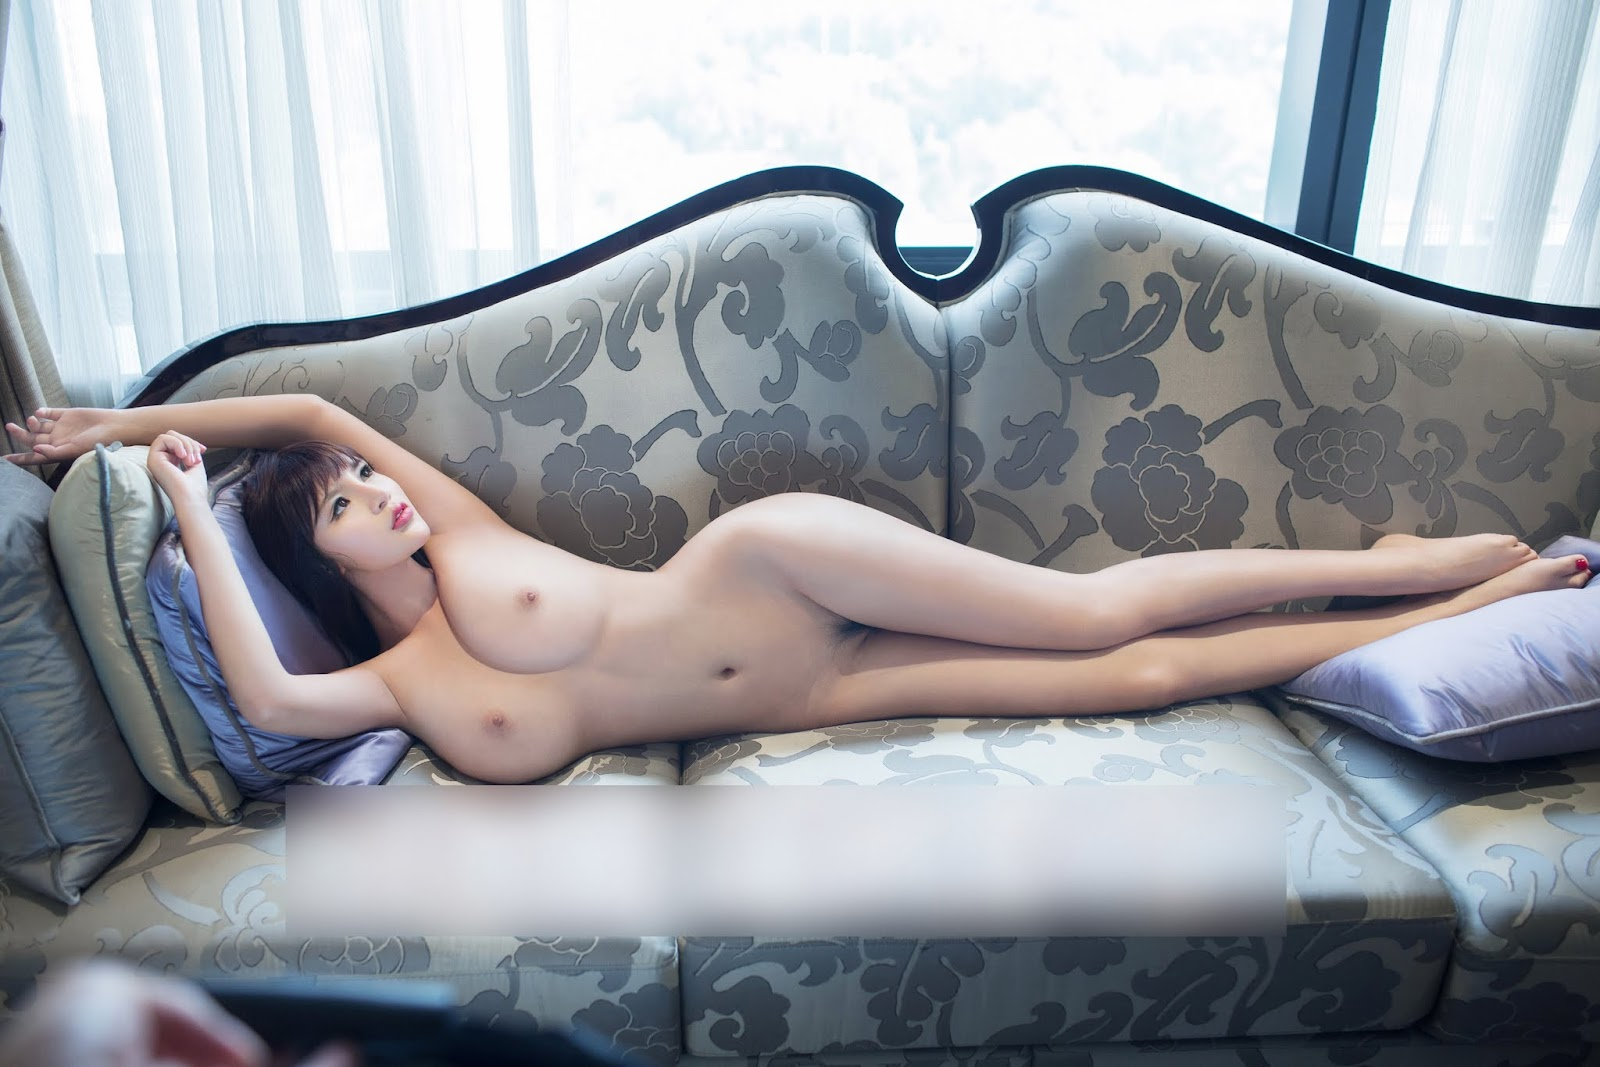 32 - Hot Girl Big TIts TUIGIRL NO.38 Asian Naked